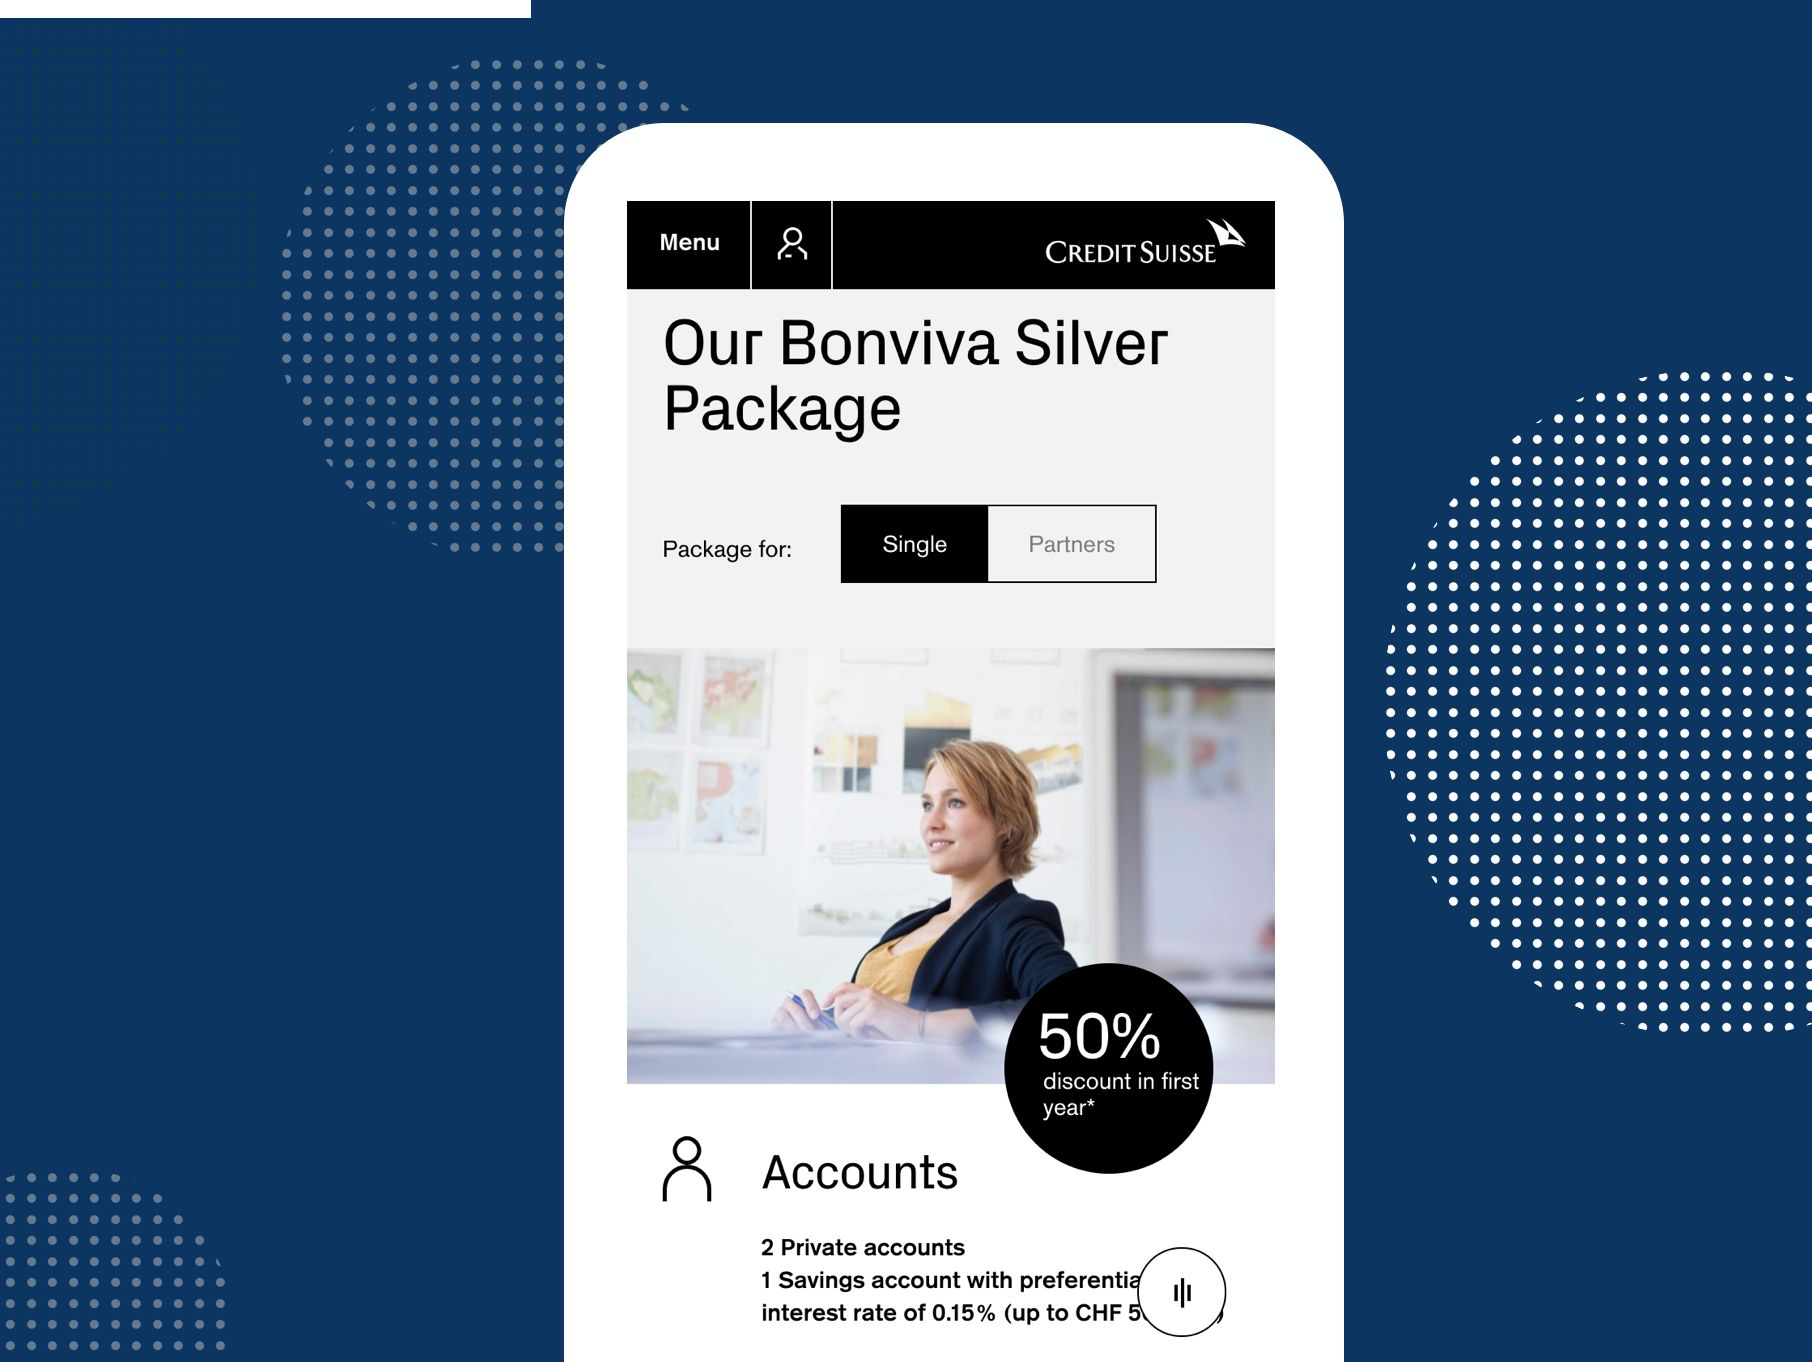 Credit Suisse - Mobile Ansicht: Our Bonviva Silver Package